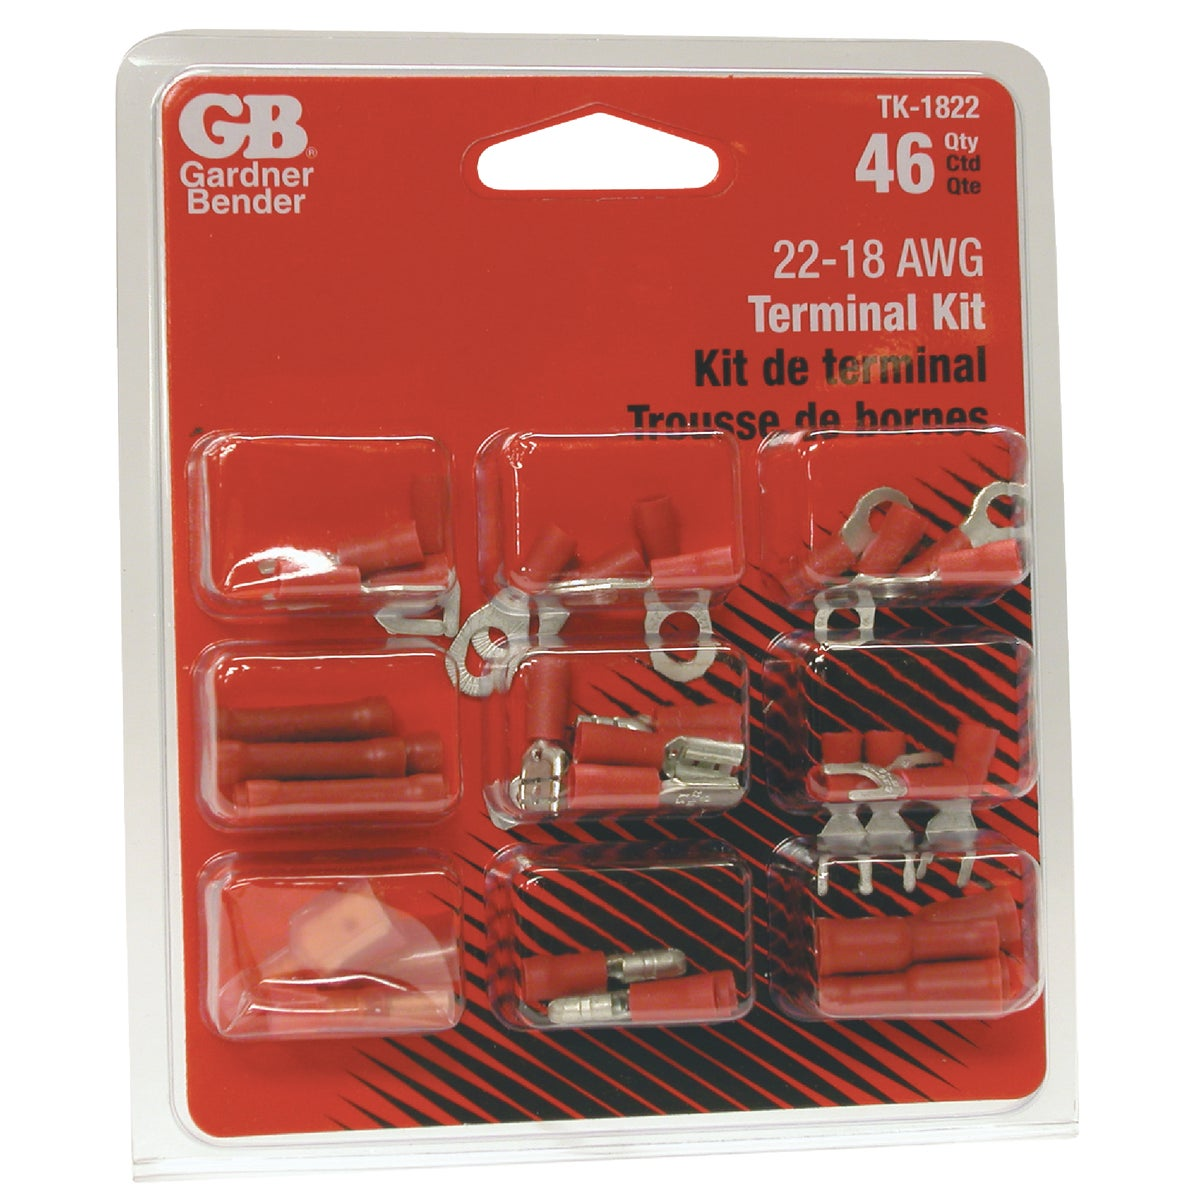 18-22 AWG TERMINAL KIT - TK-1822 by G B Electrical Inc